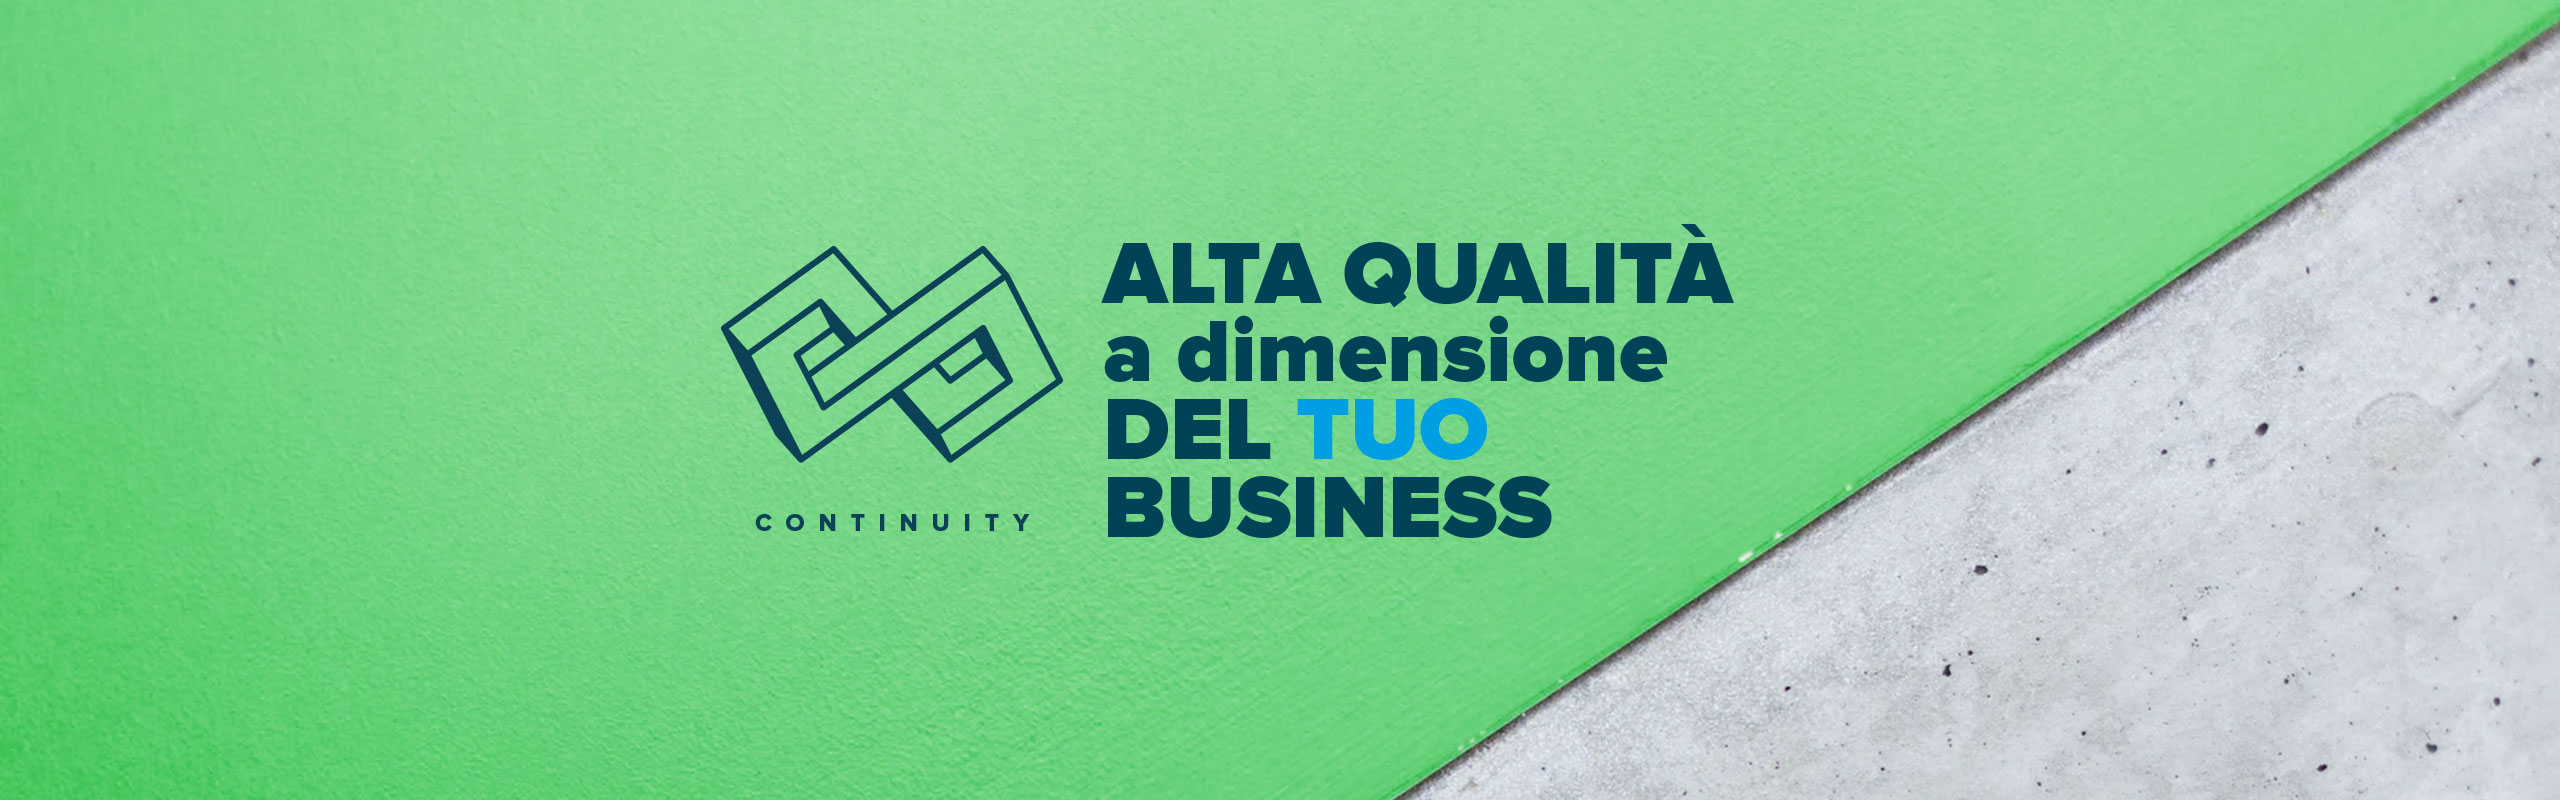 qualit-business__2560x800.jpg